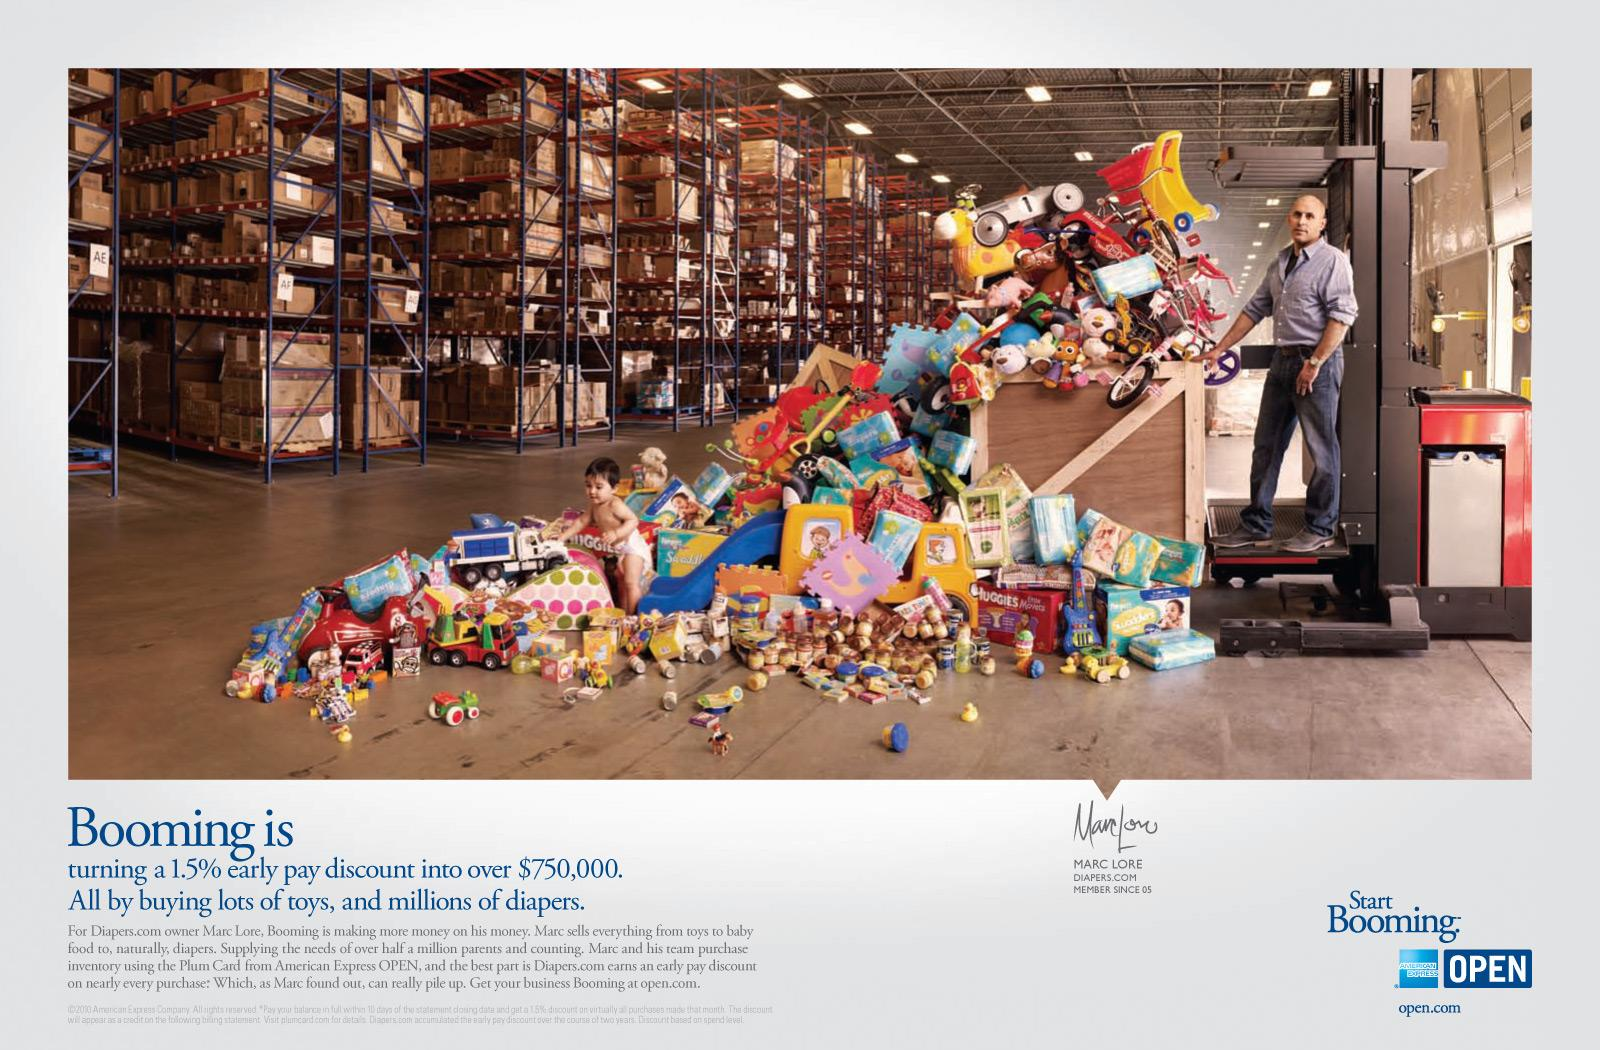 American Express Print Ad -  Start Booming, Marc Lore